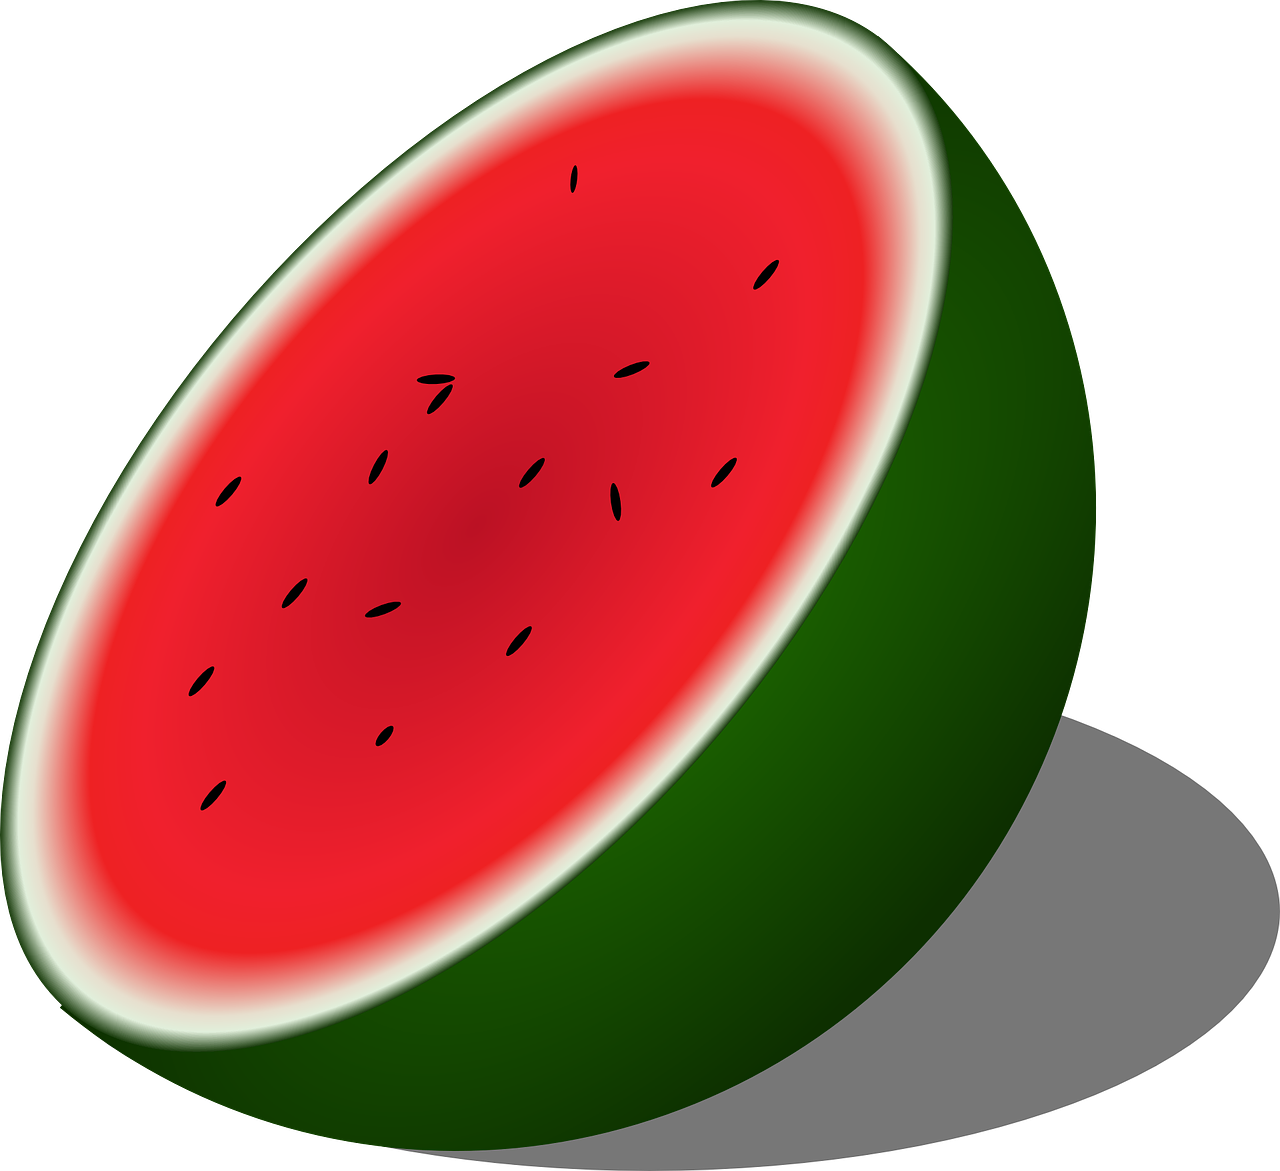 watermelon melon half free photo